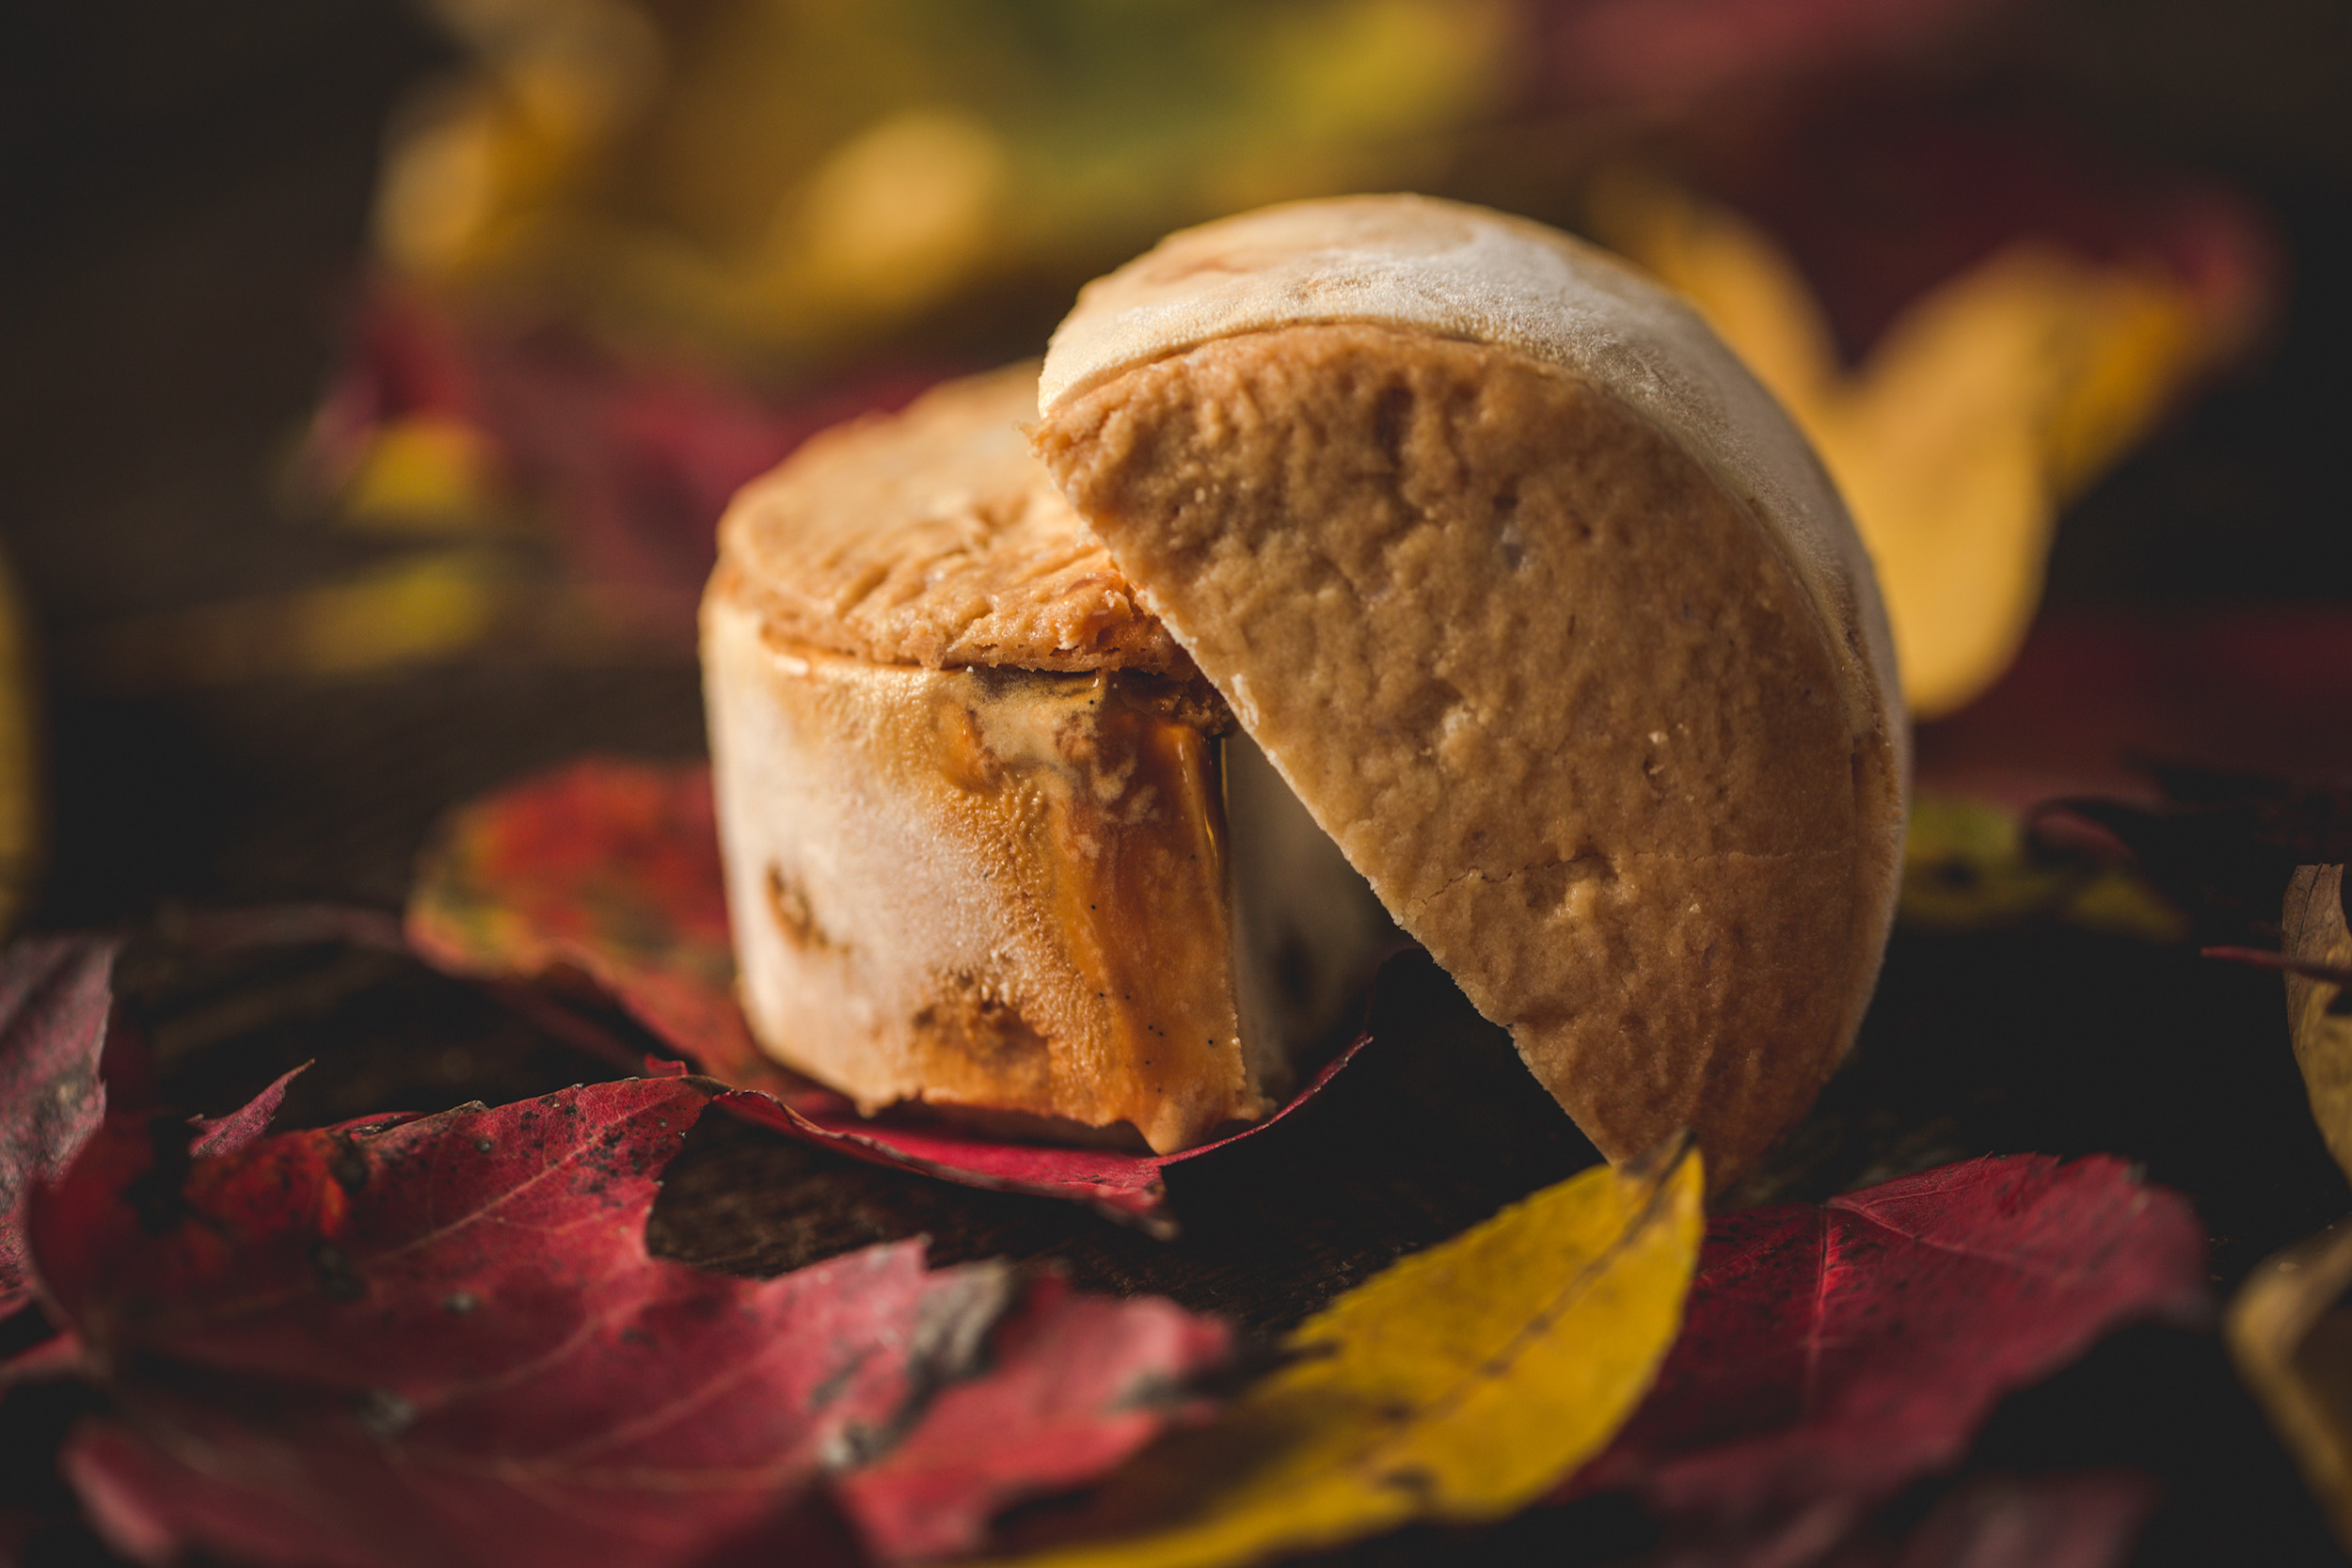 Pumpkin Caramel Ice Cream on Shortbread cookies. Roasted pumpkin ice cream with swirls of homemade creamy caramel throughout. Sure to impress all your holiday guests. Photo by Matt Dayak